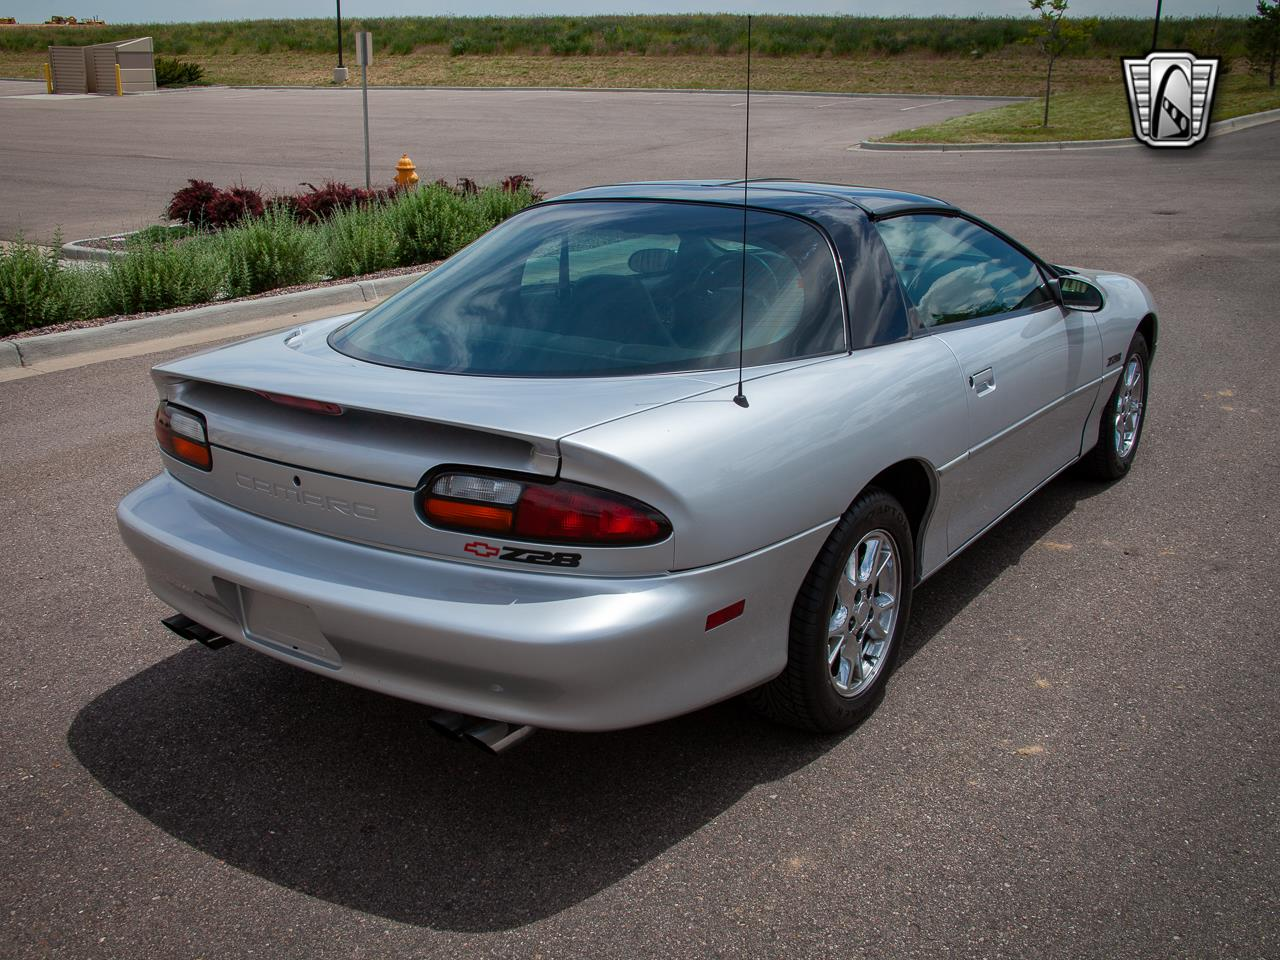 2002 Chevrolet Camaro (CC-1340934) for sale in O'Fallon, Illinois